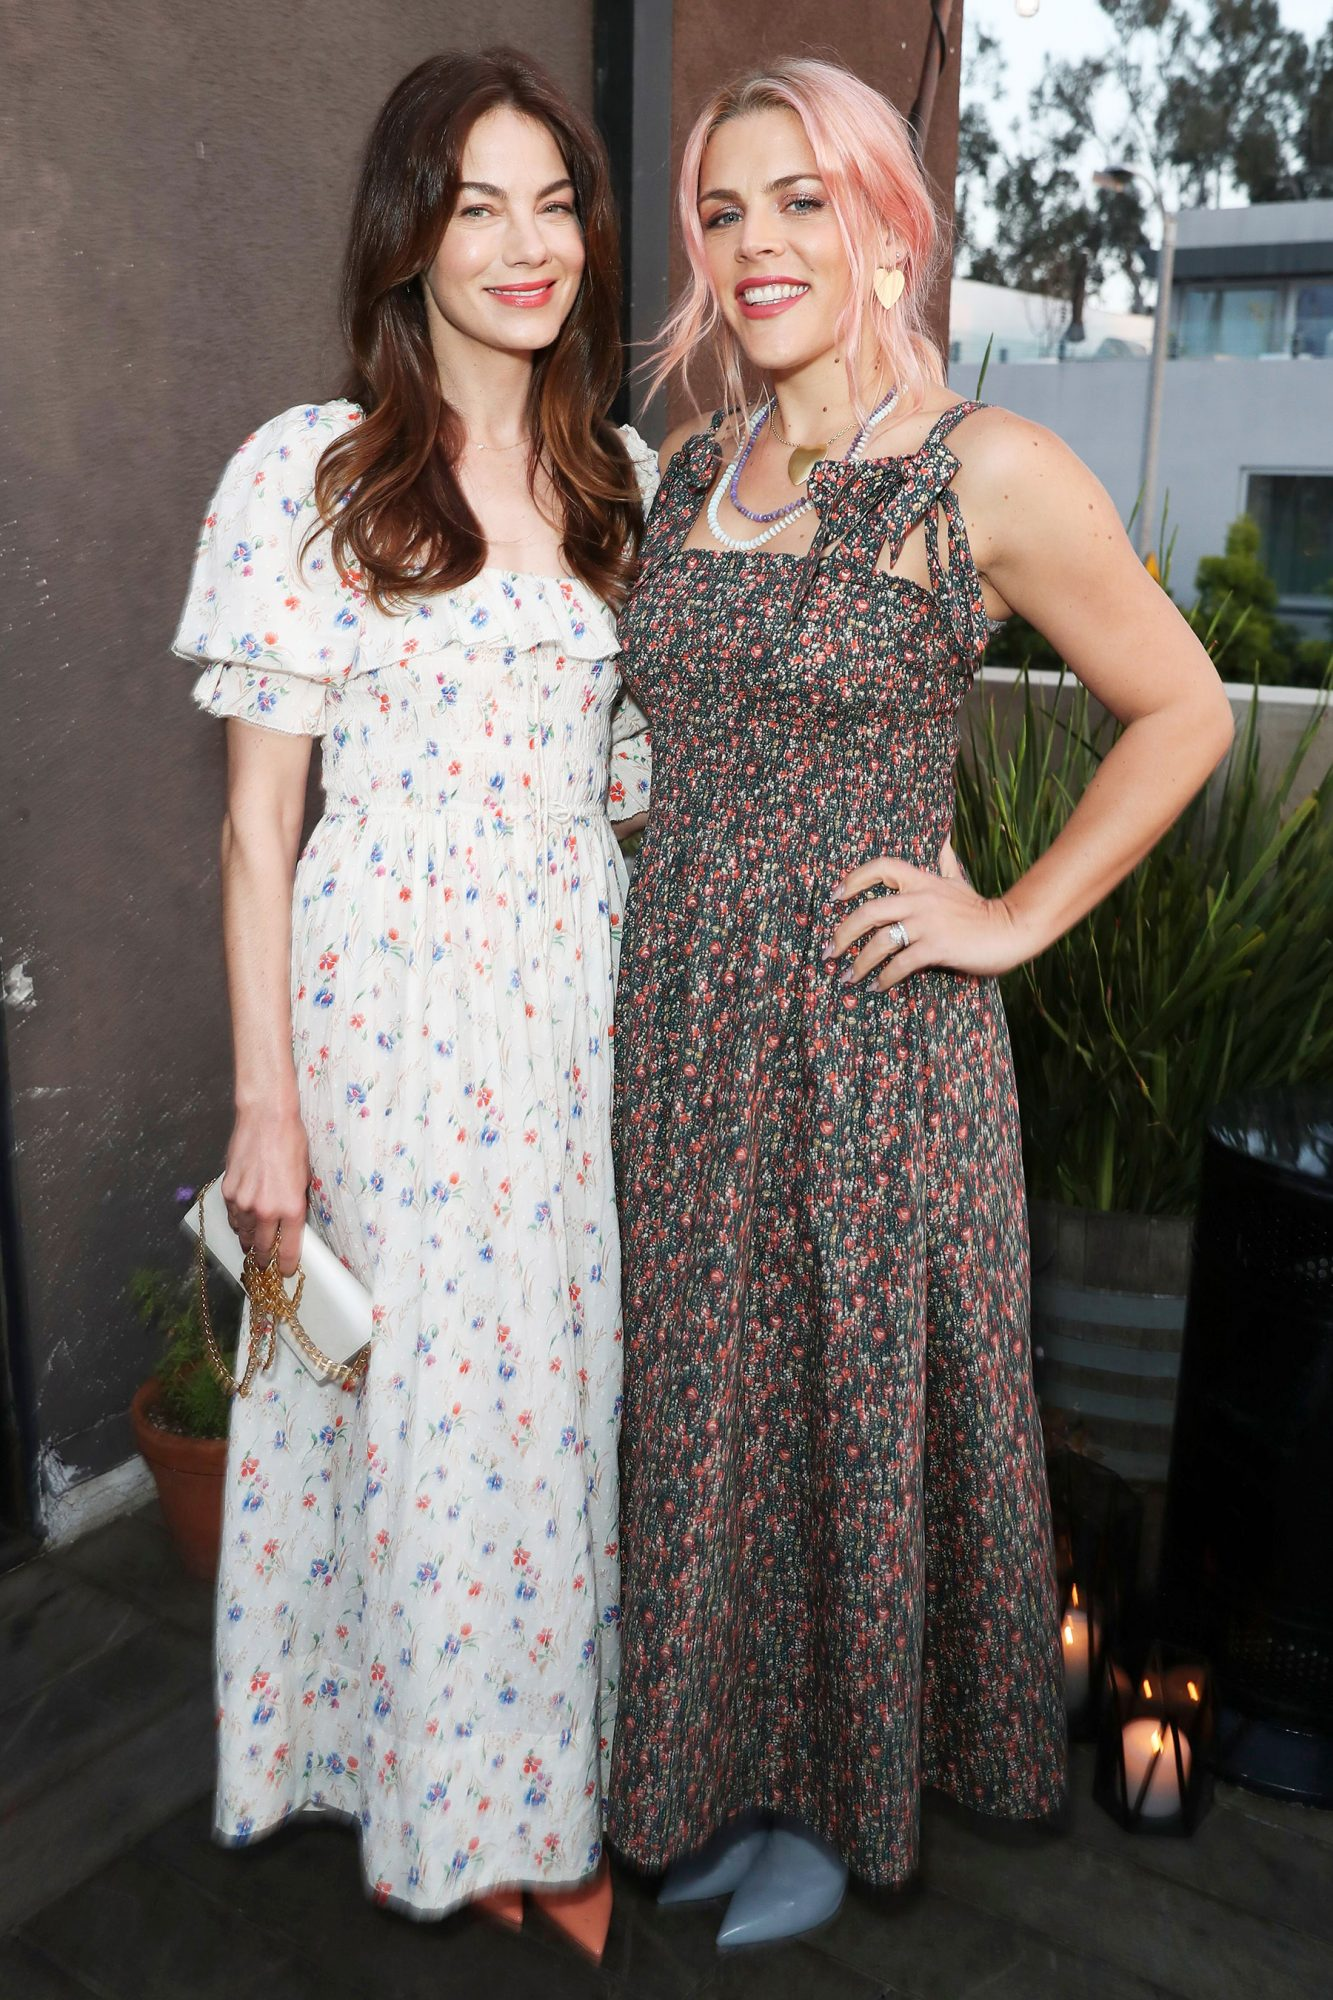 Michelle Monaghan and Busy Philipps